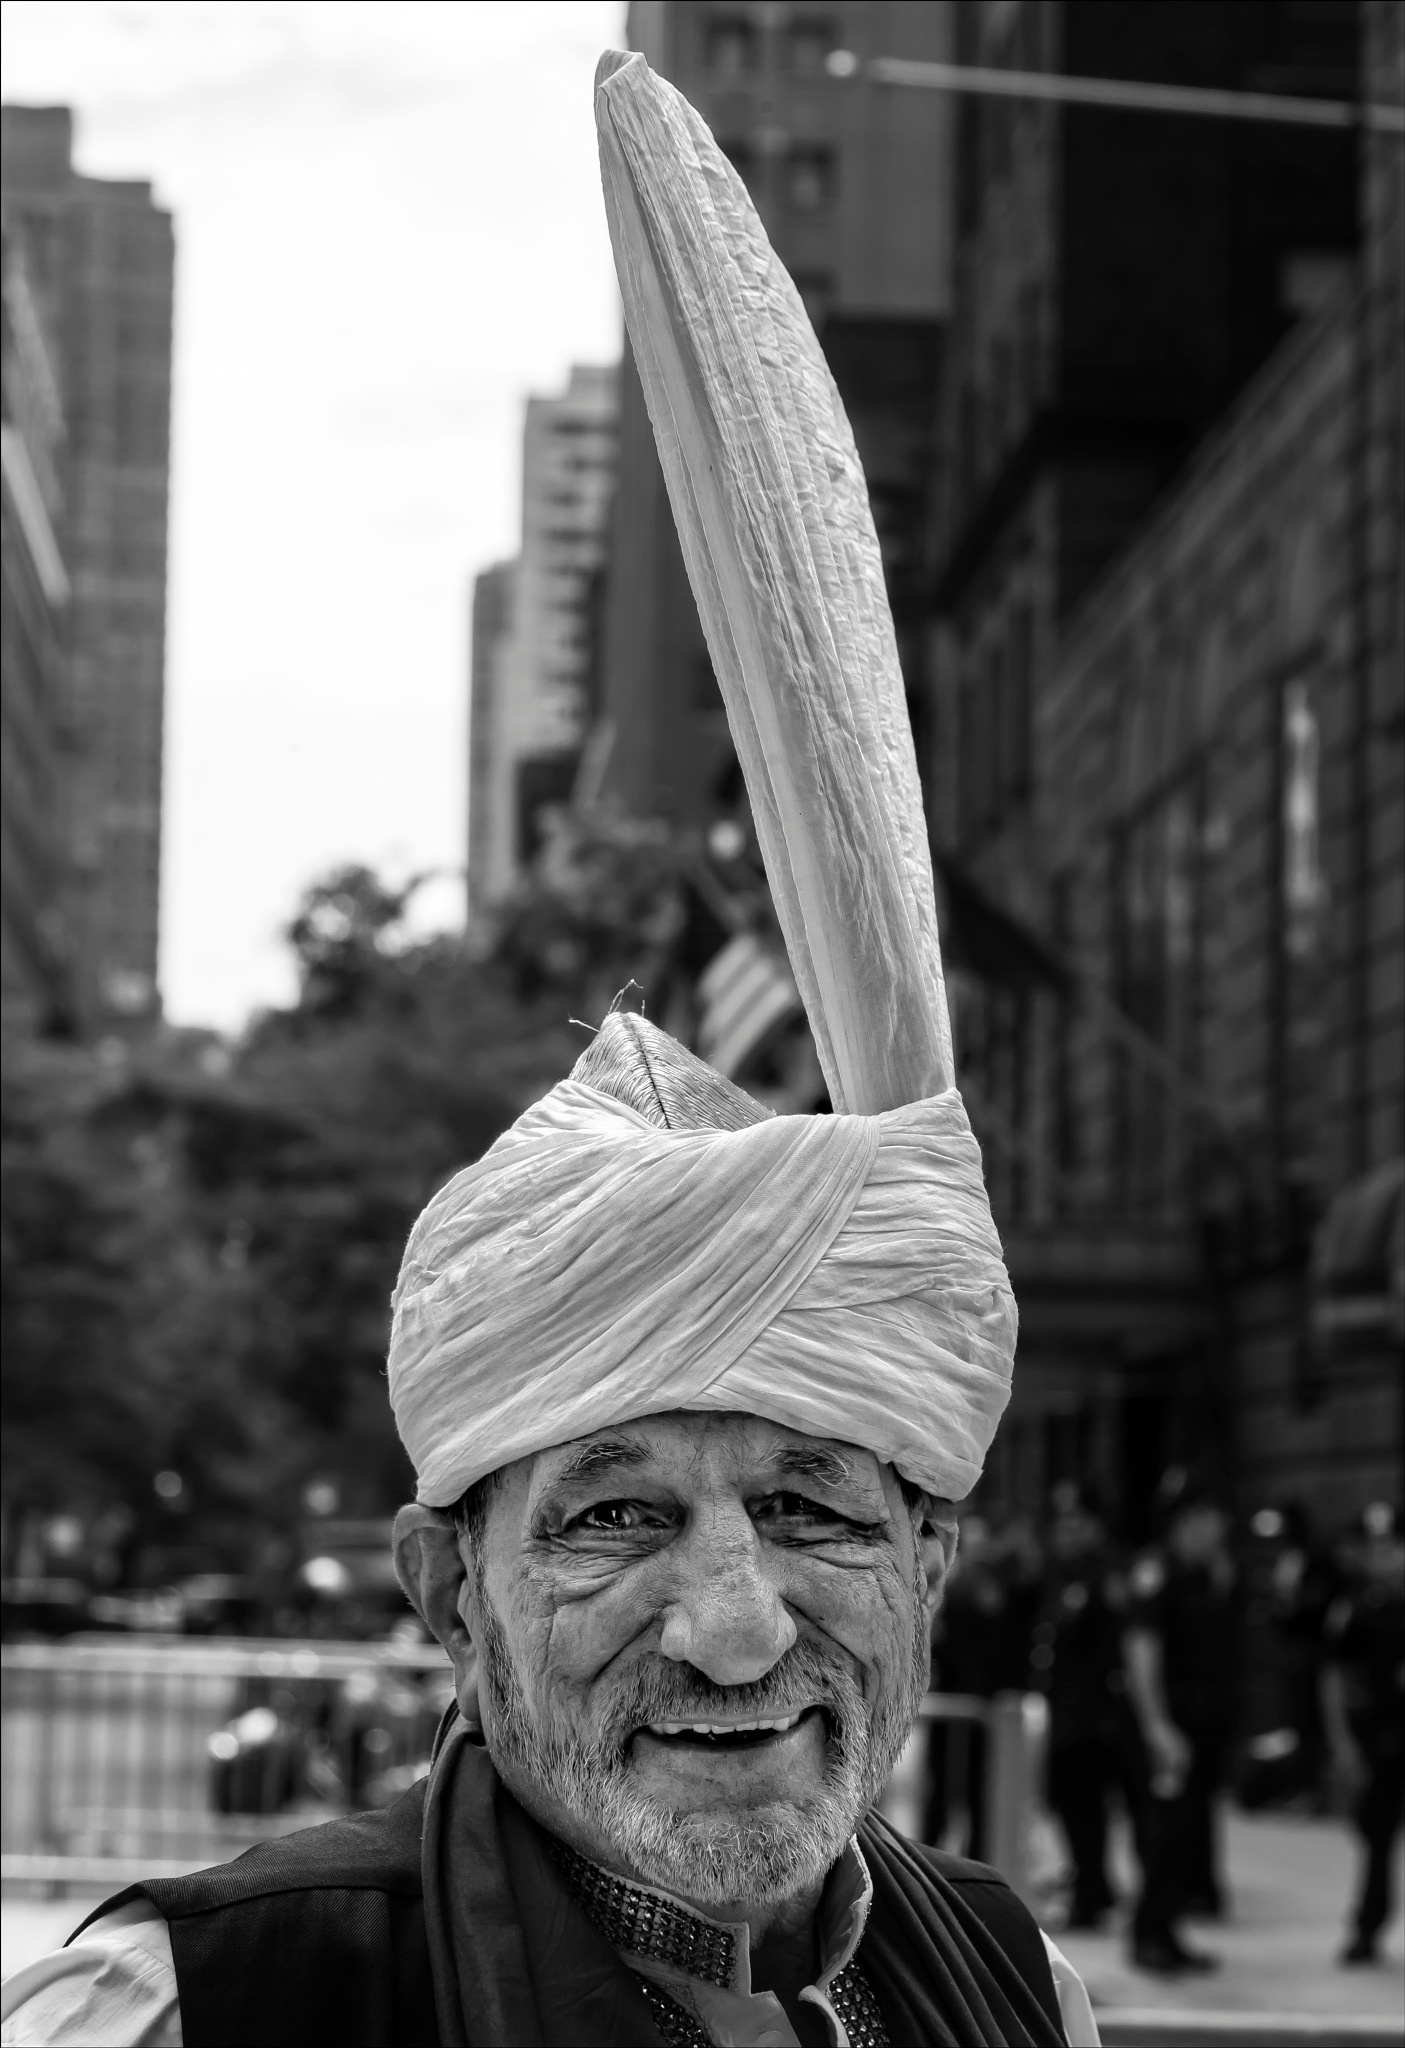 Pakistani Day NYC 2017 Man in Traditional Dress by robertullmann